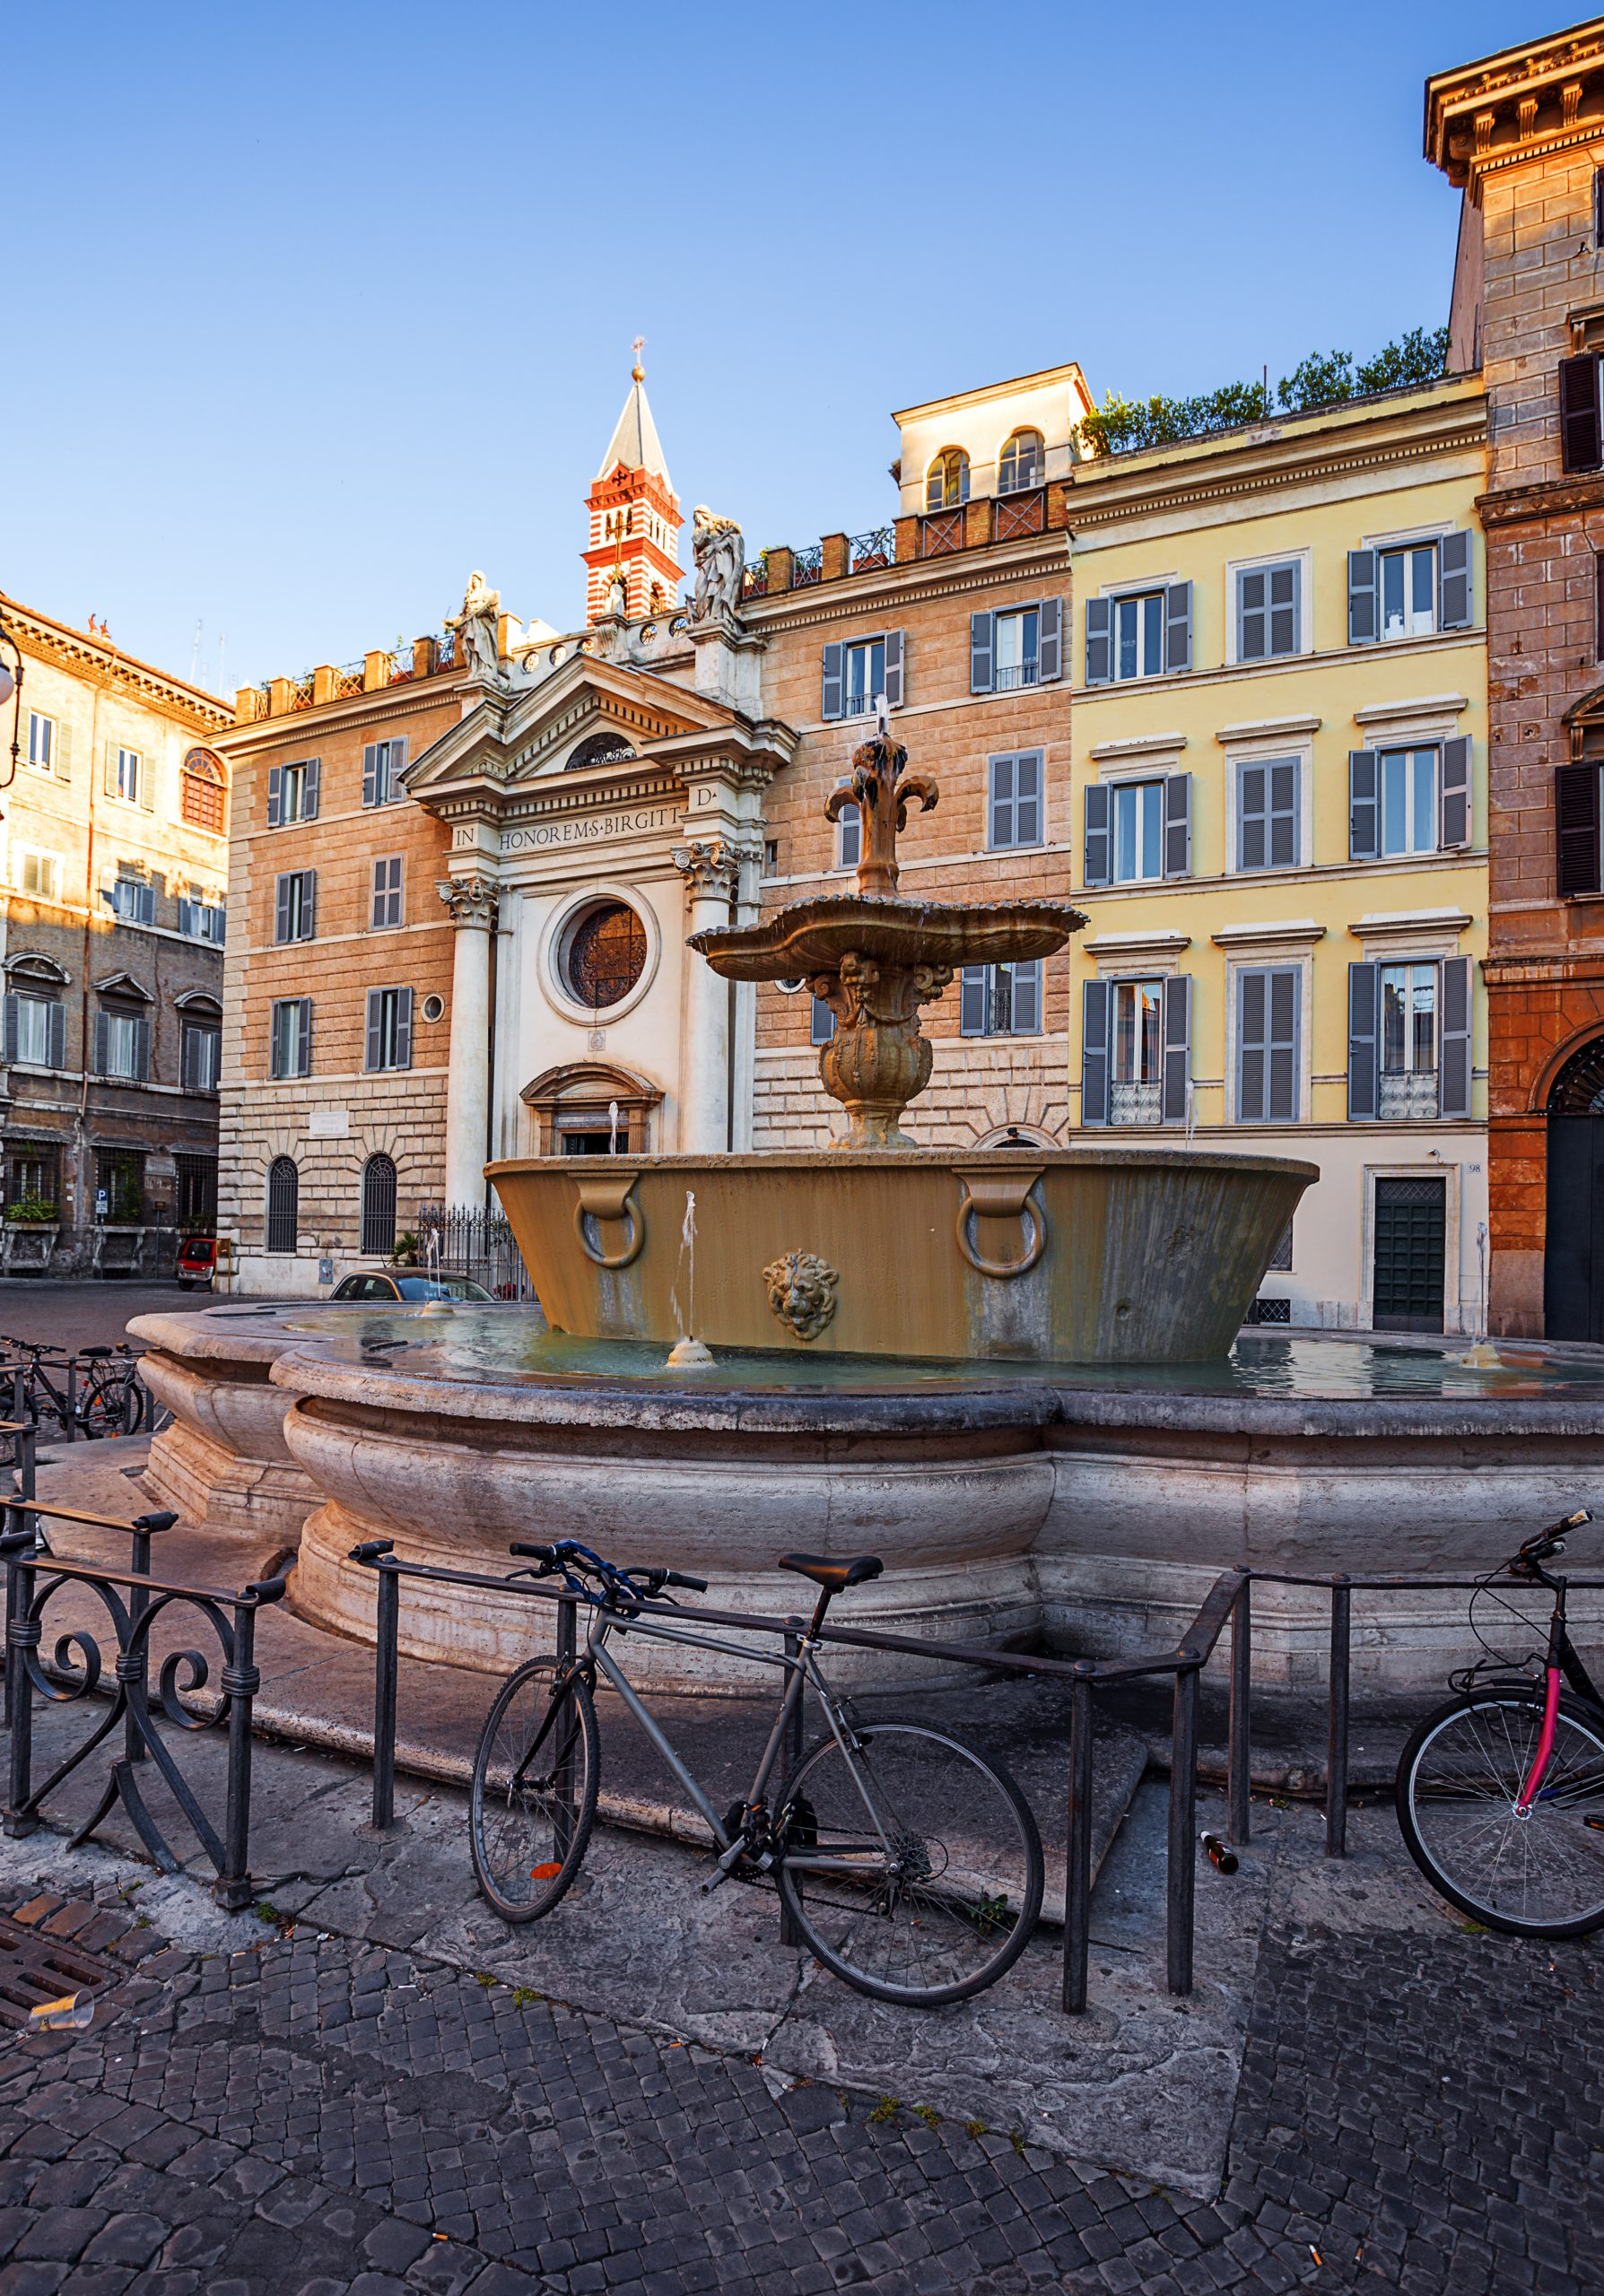 Two,Fountains,From,Old,Bathtub,In,Square,If,Front,Of